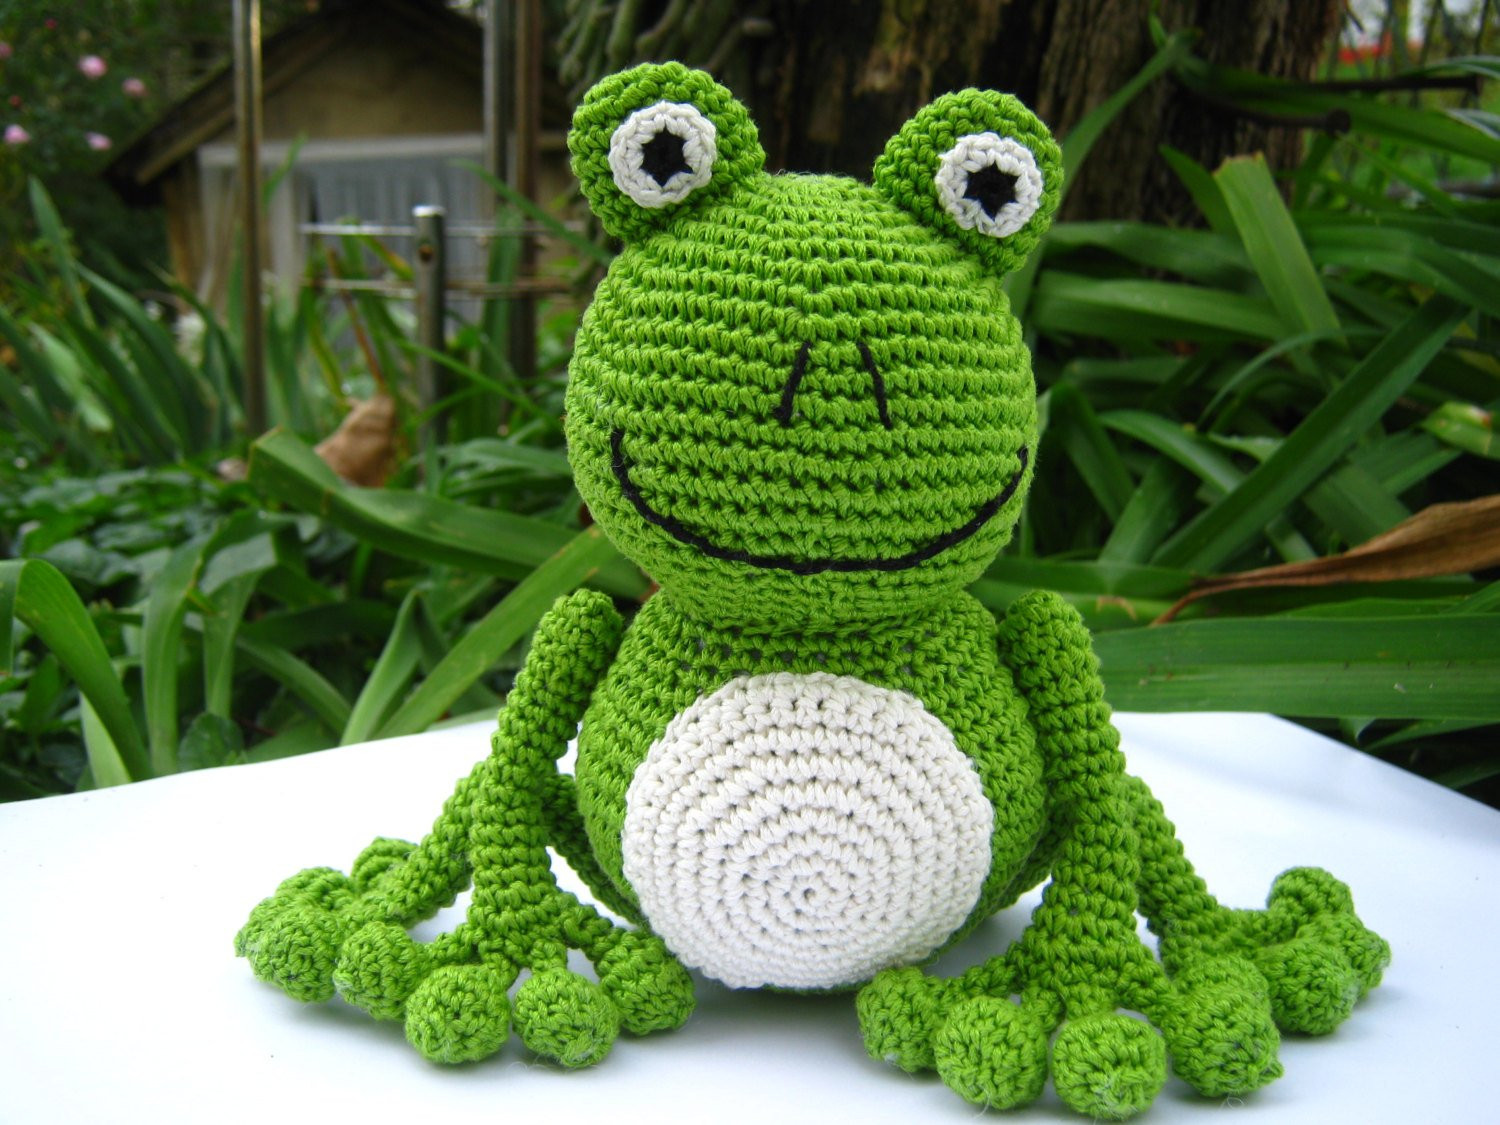 Crochet Frogs Fresh Amigurumi Green Chrochet Frog Pattern Of Superb 49 Pictures Crochet Frogs